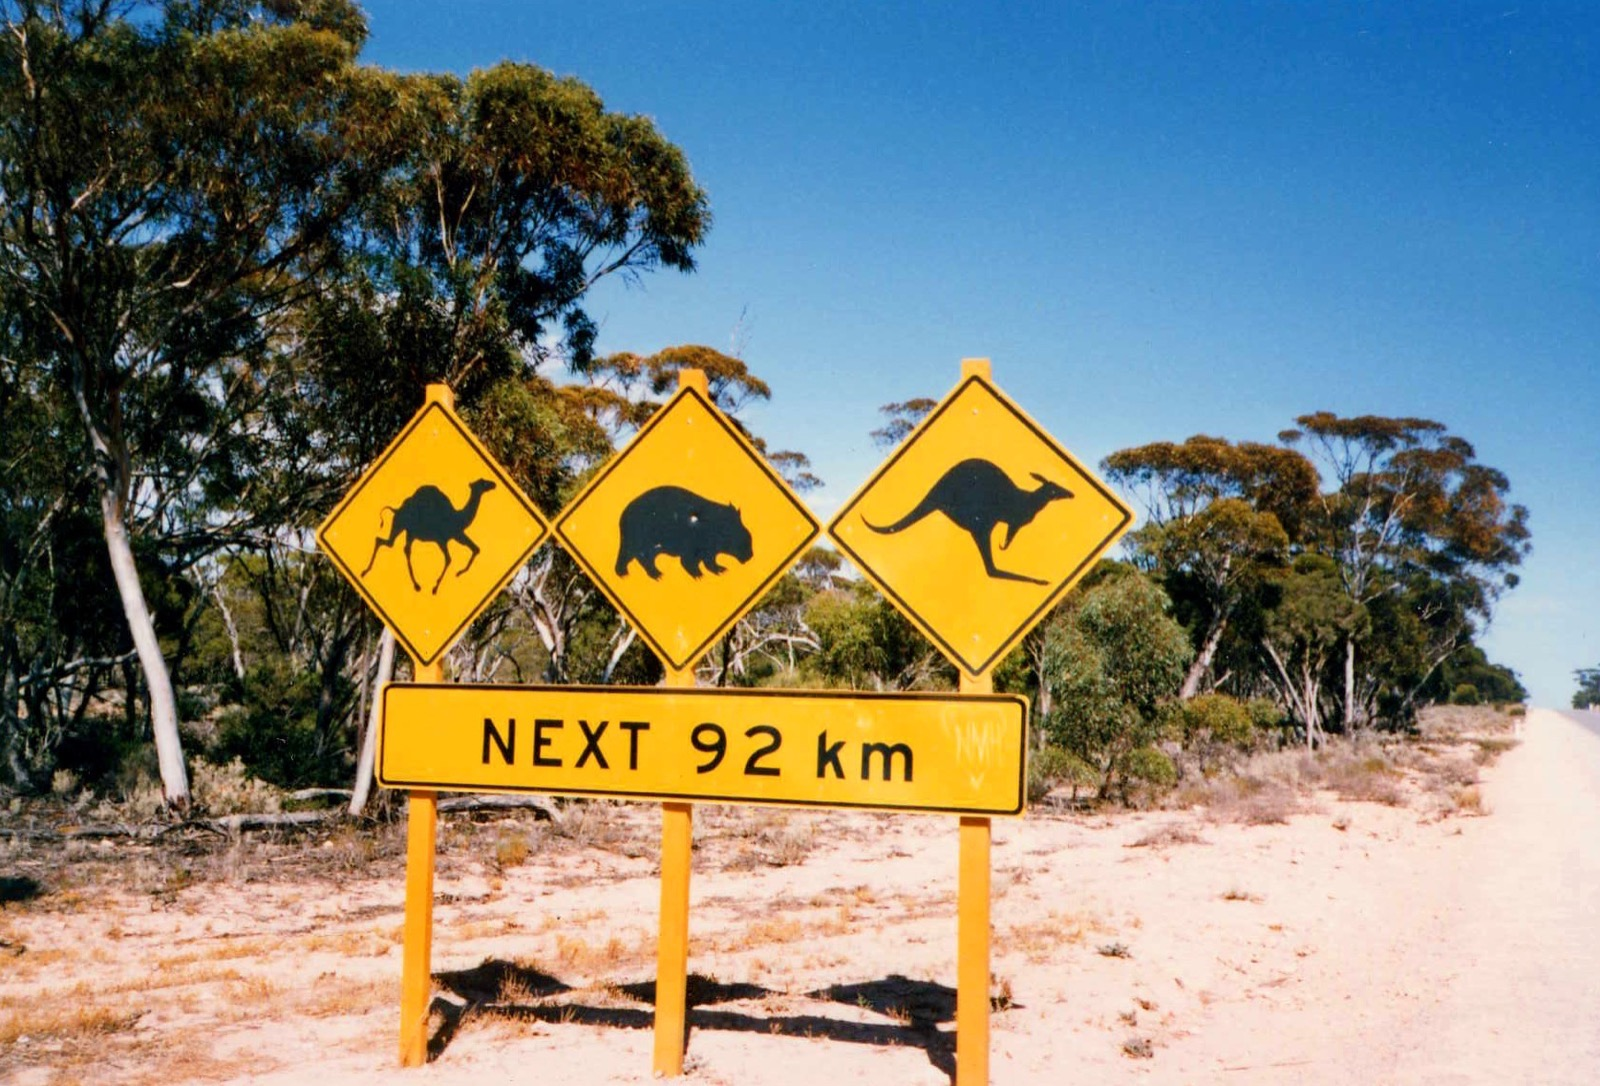 Camel, Koala, and Kangaroo crossing signs along the road to Port of Lucinda.